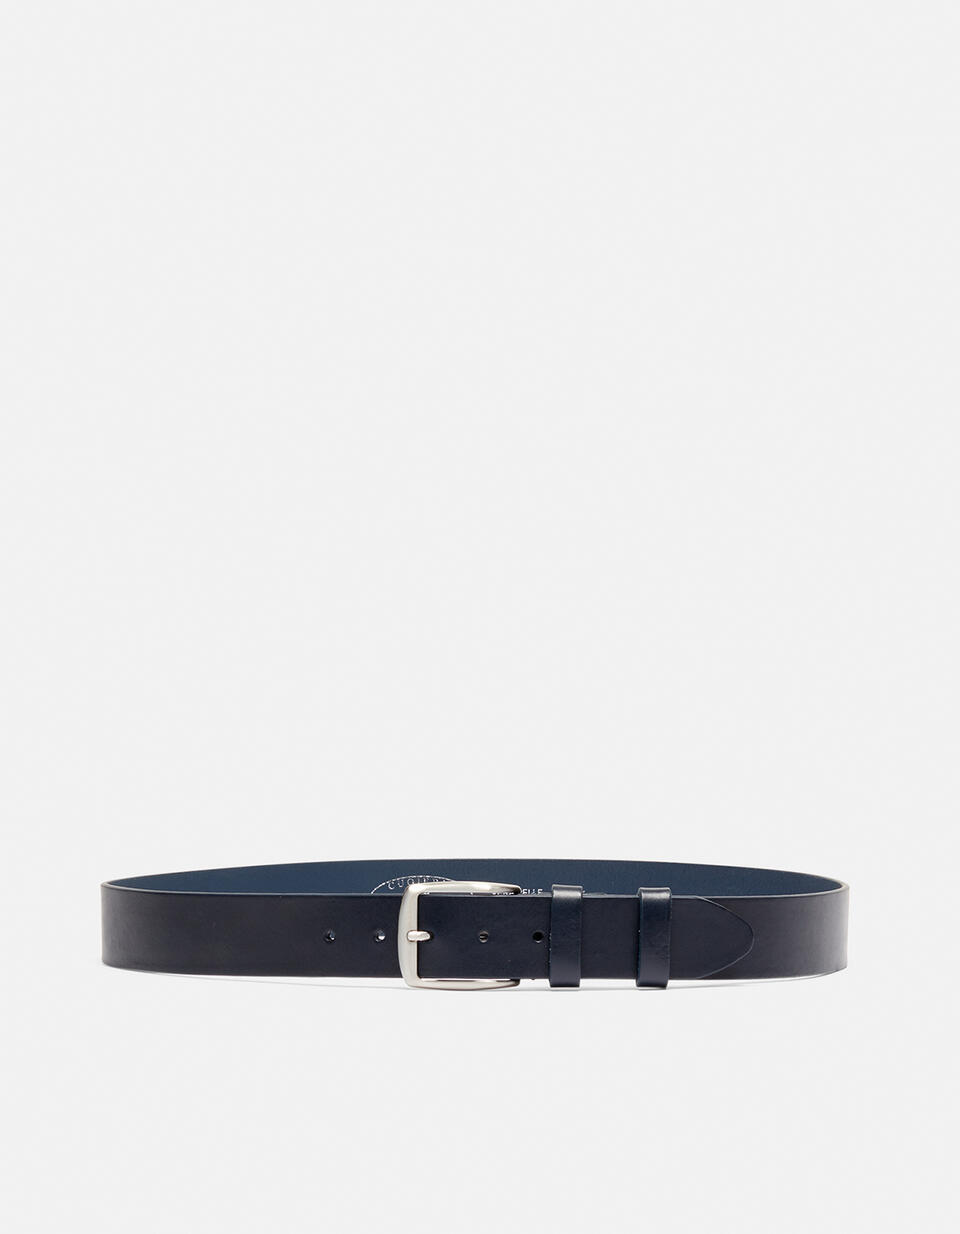 CLASSIC LEATHER BELT WITHOUT SEAMS HEIGHT 4,0 CM  Cuoieria Fiorentina